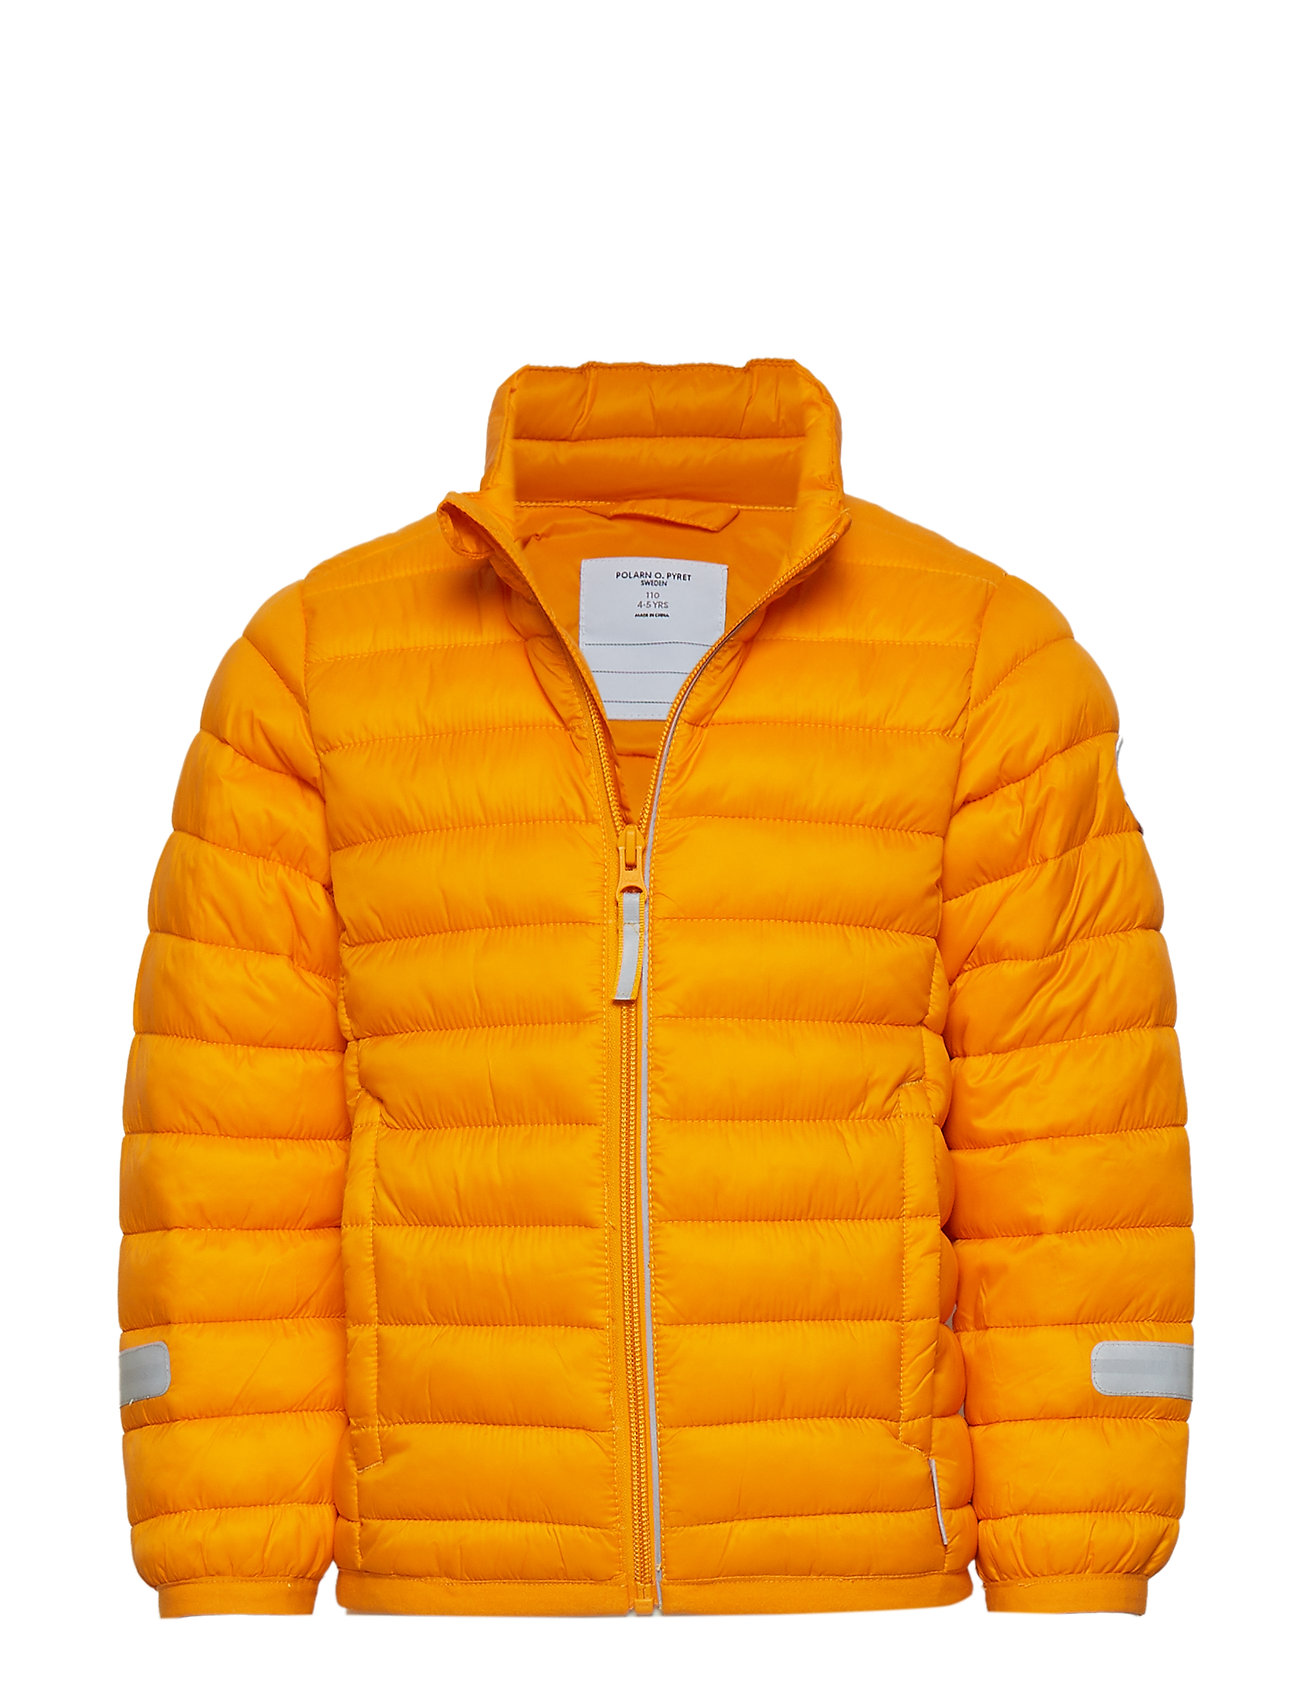 Polarn O. Pyret Lightweight Jacket